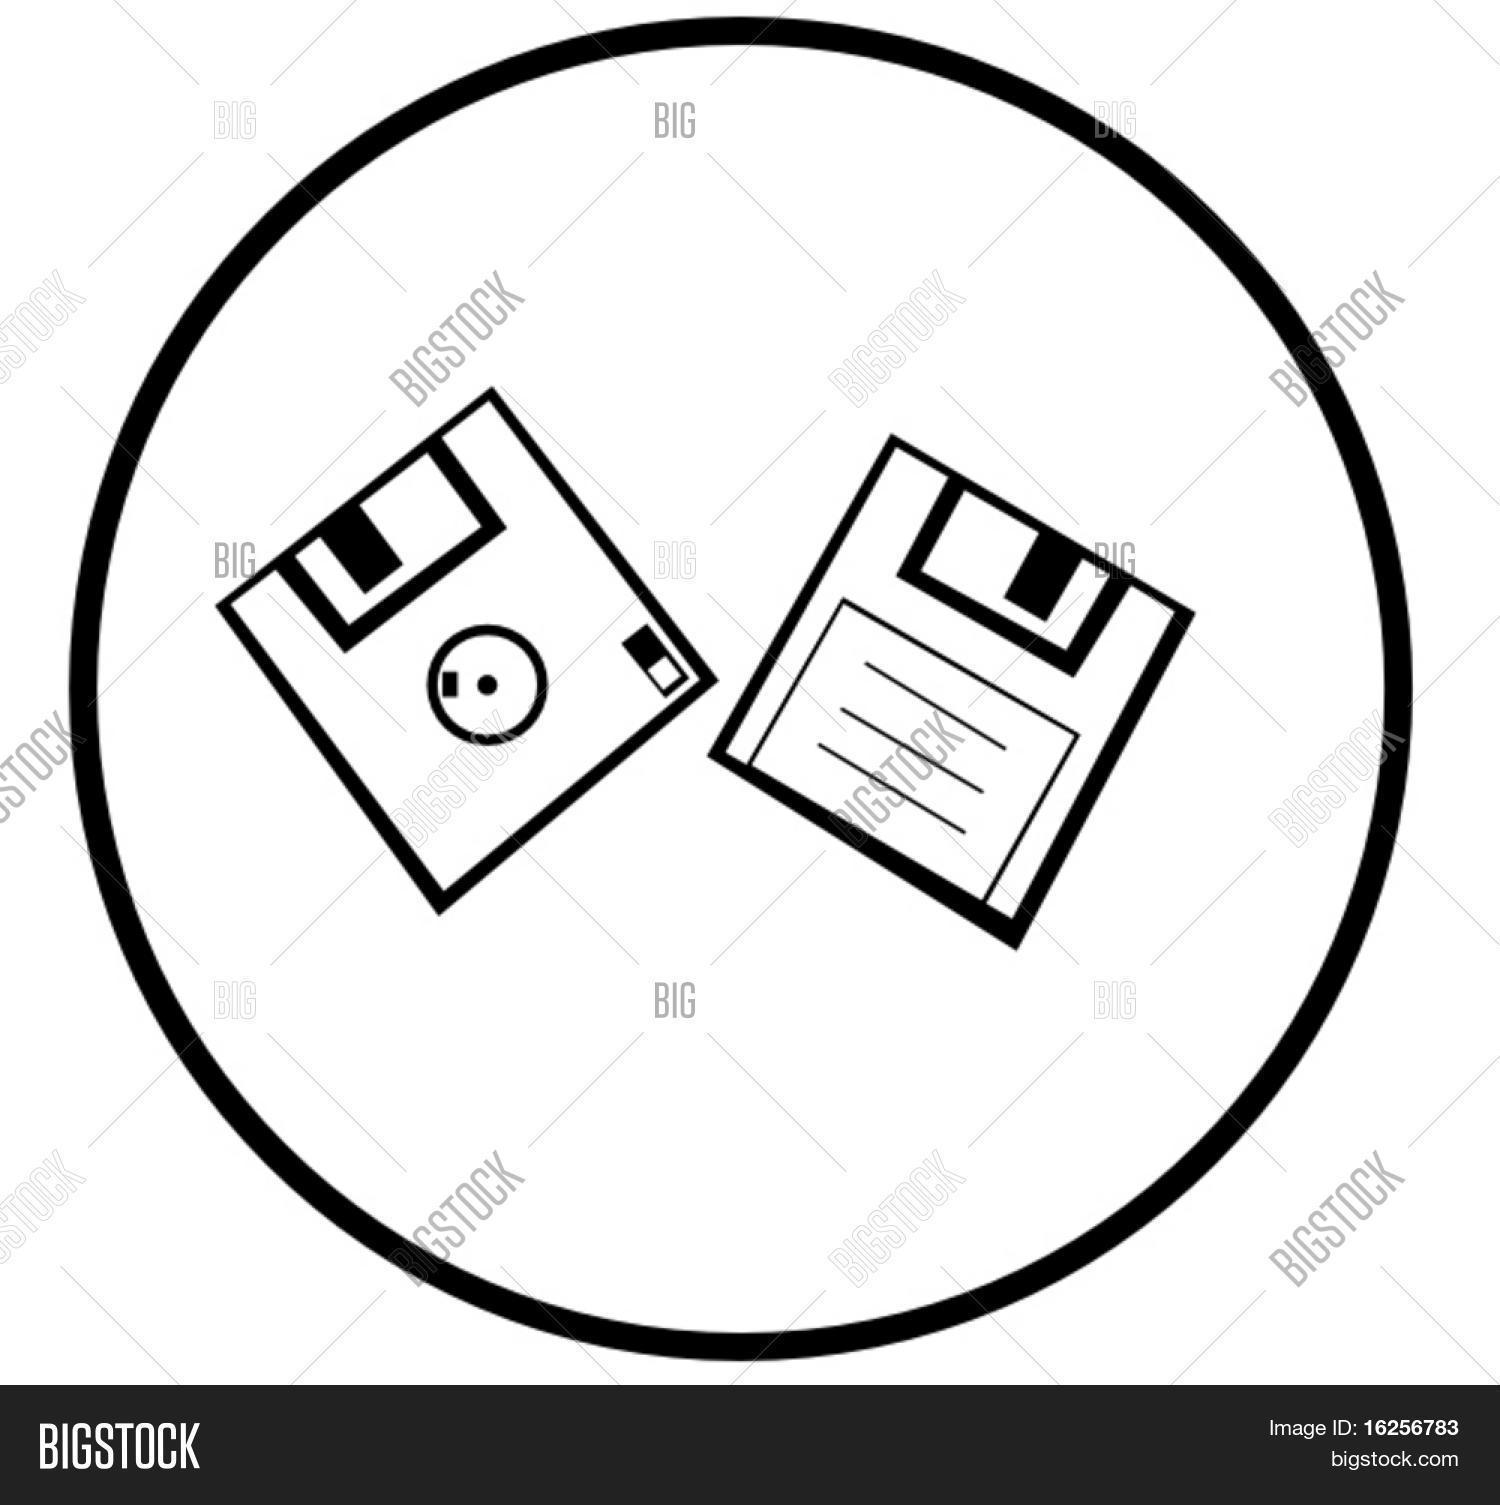 Floppy Disk Drive Diagram Wiring Database Electronic Circuit Diagramquot Stock Photo And Royaltyfree Images On Symbol Vector Free Trial Bigstock Sector